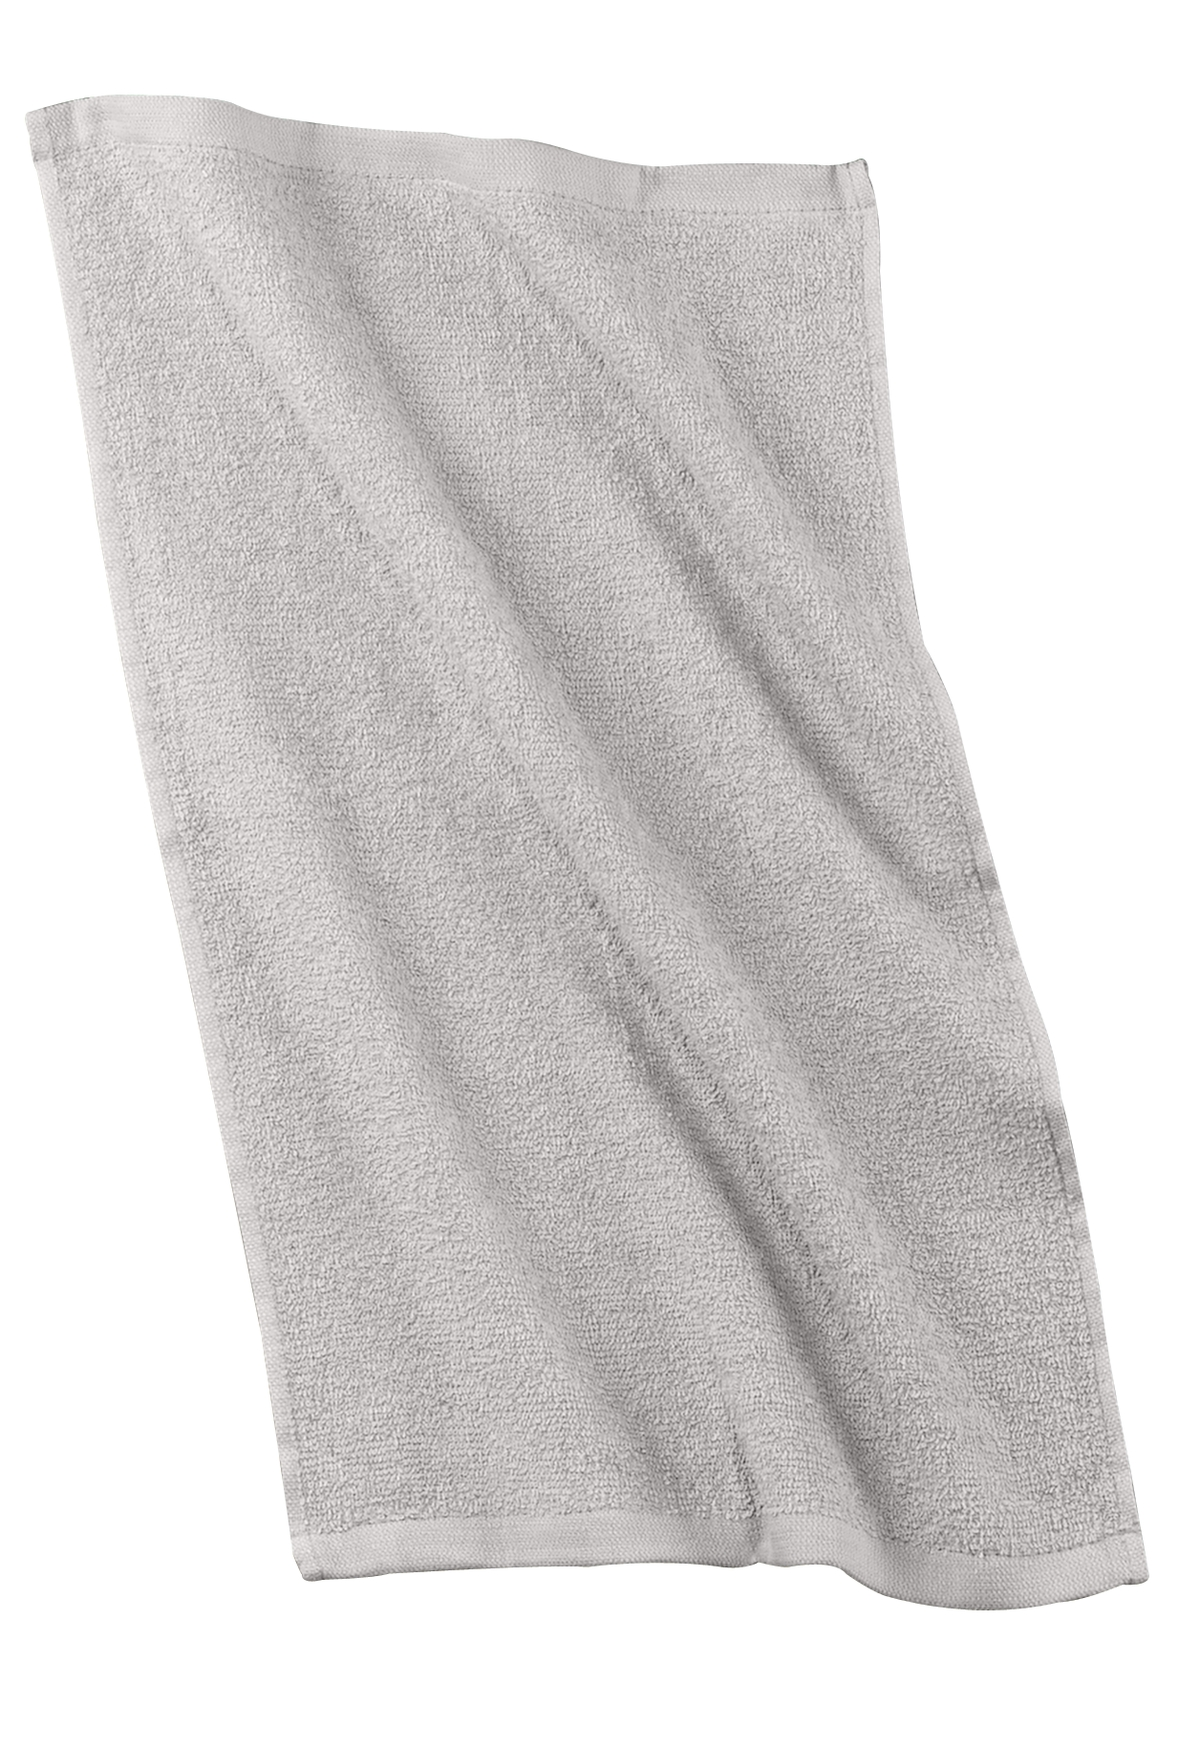 Port Authority ®  - Rally Towel.  PT38 - Silver